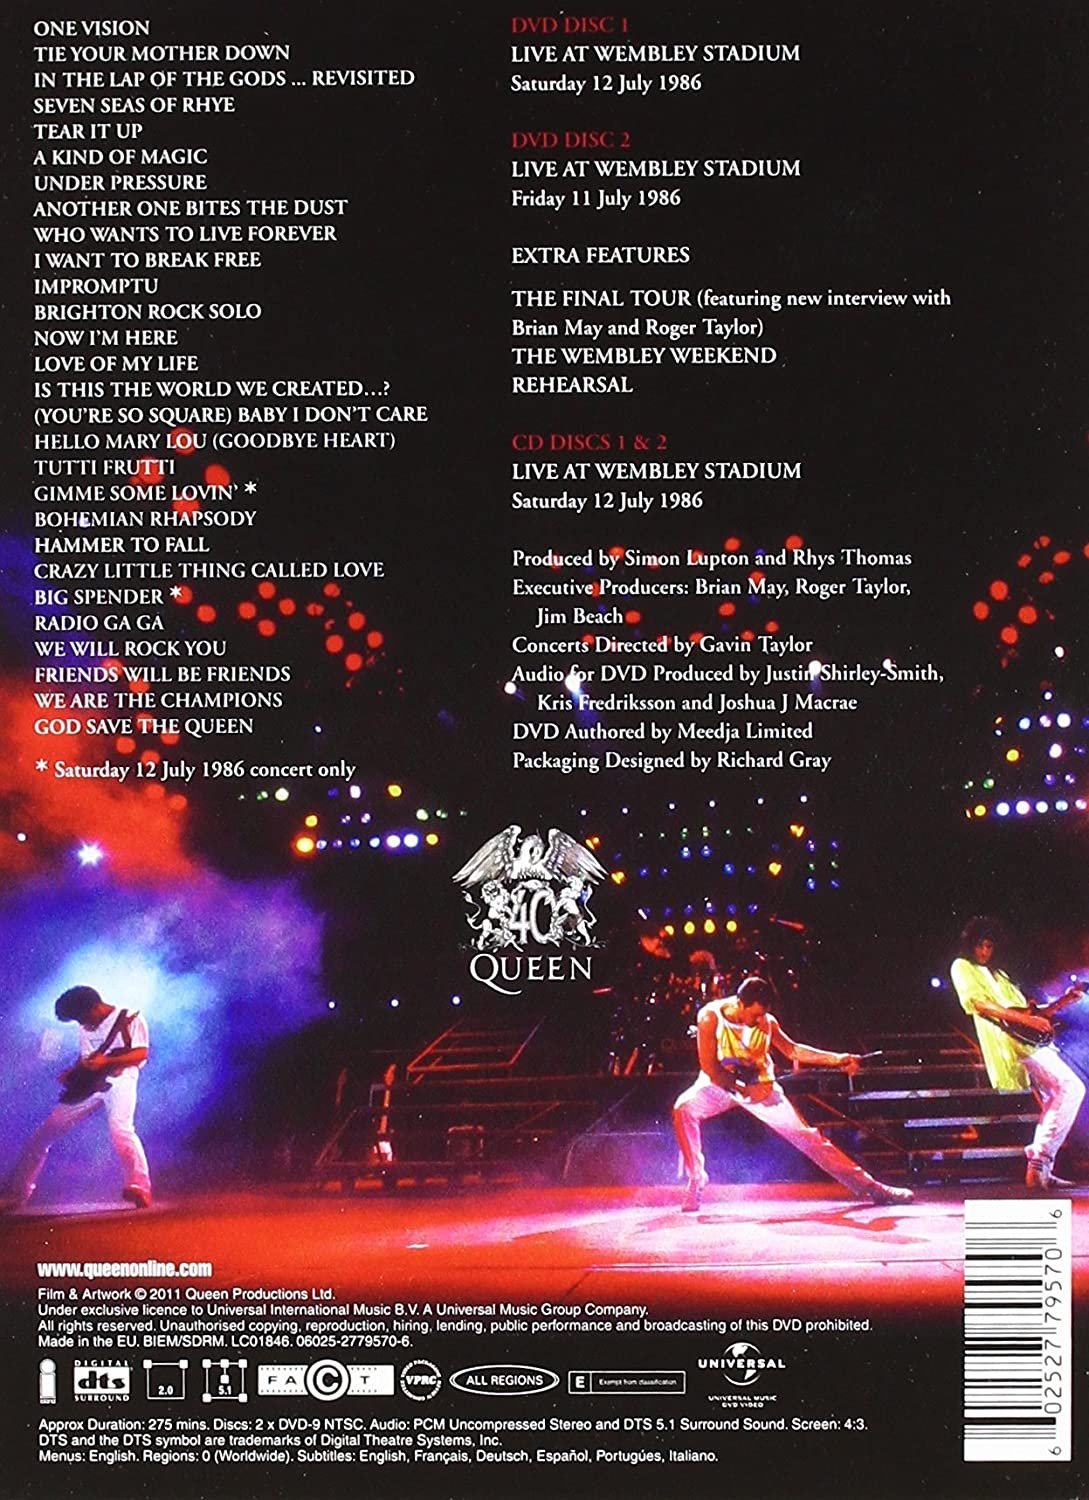 Live at Wembley 25th Anniversary 2DVD+2CD Deluxe Edition 2011: Amazon.co.uk: Queen: DVD & Blu-ray